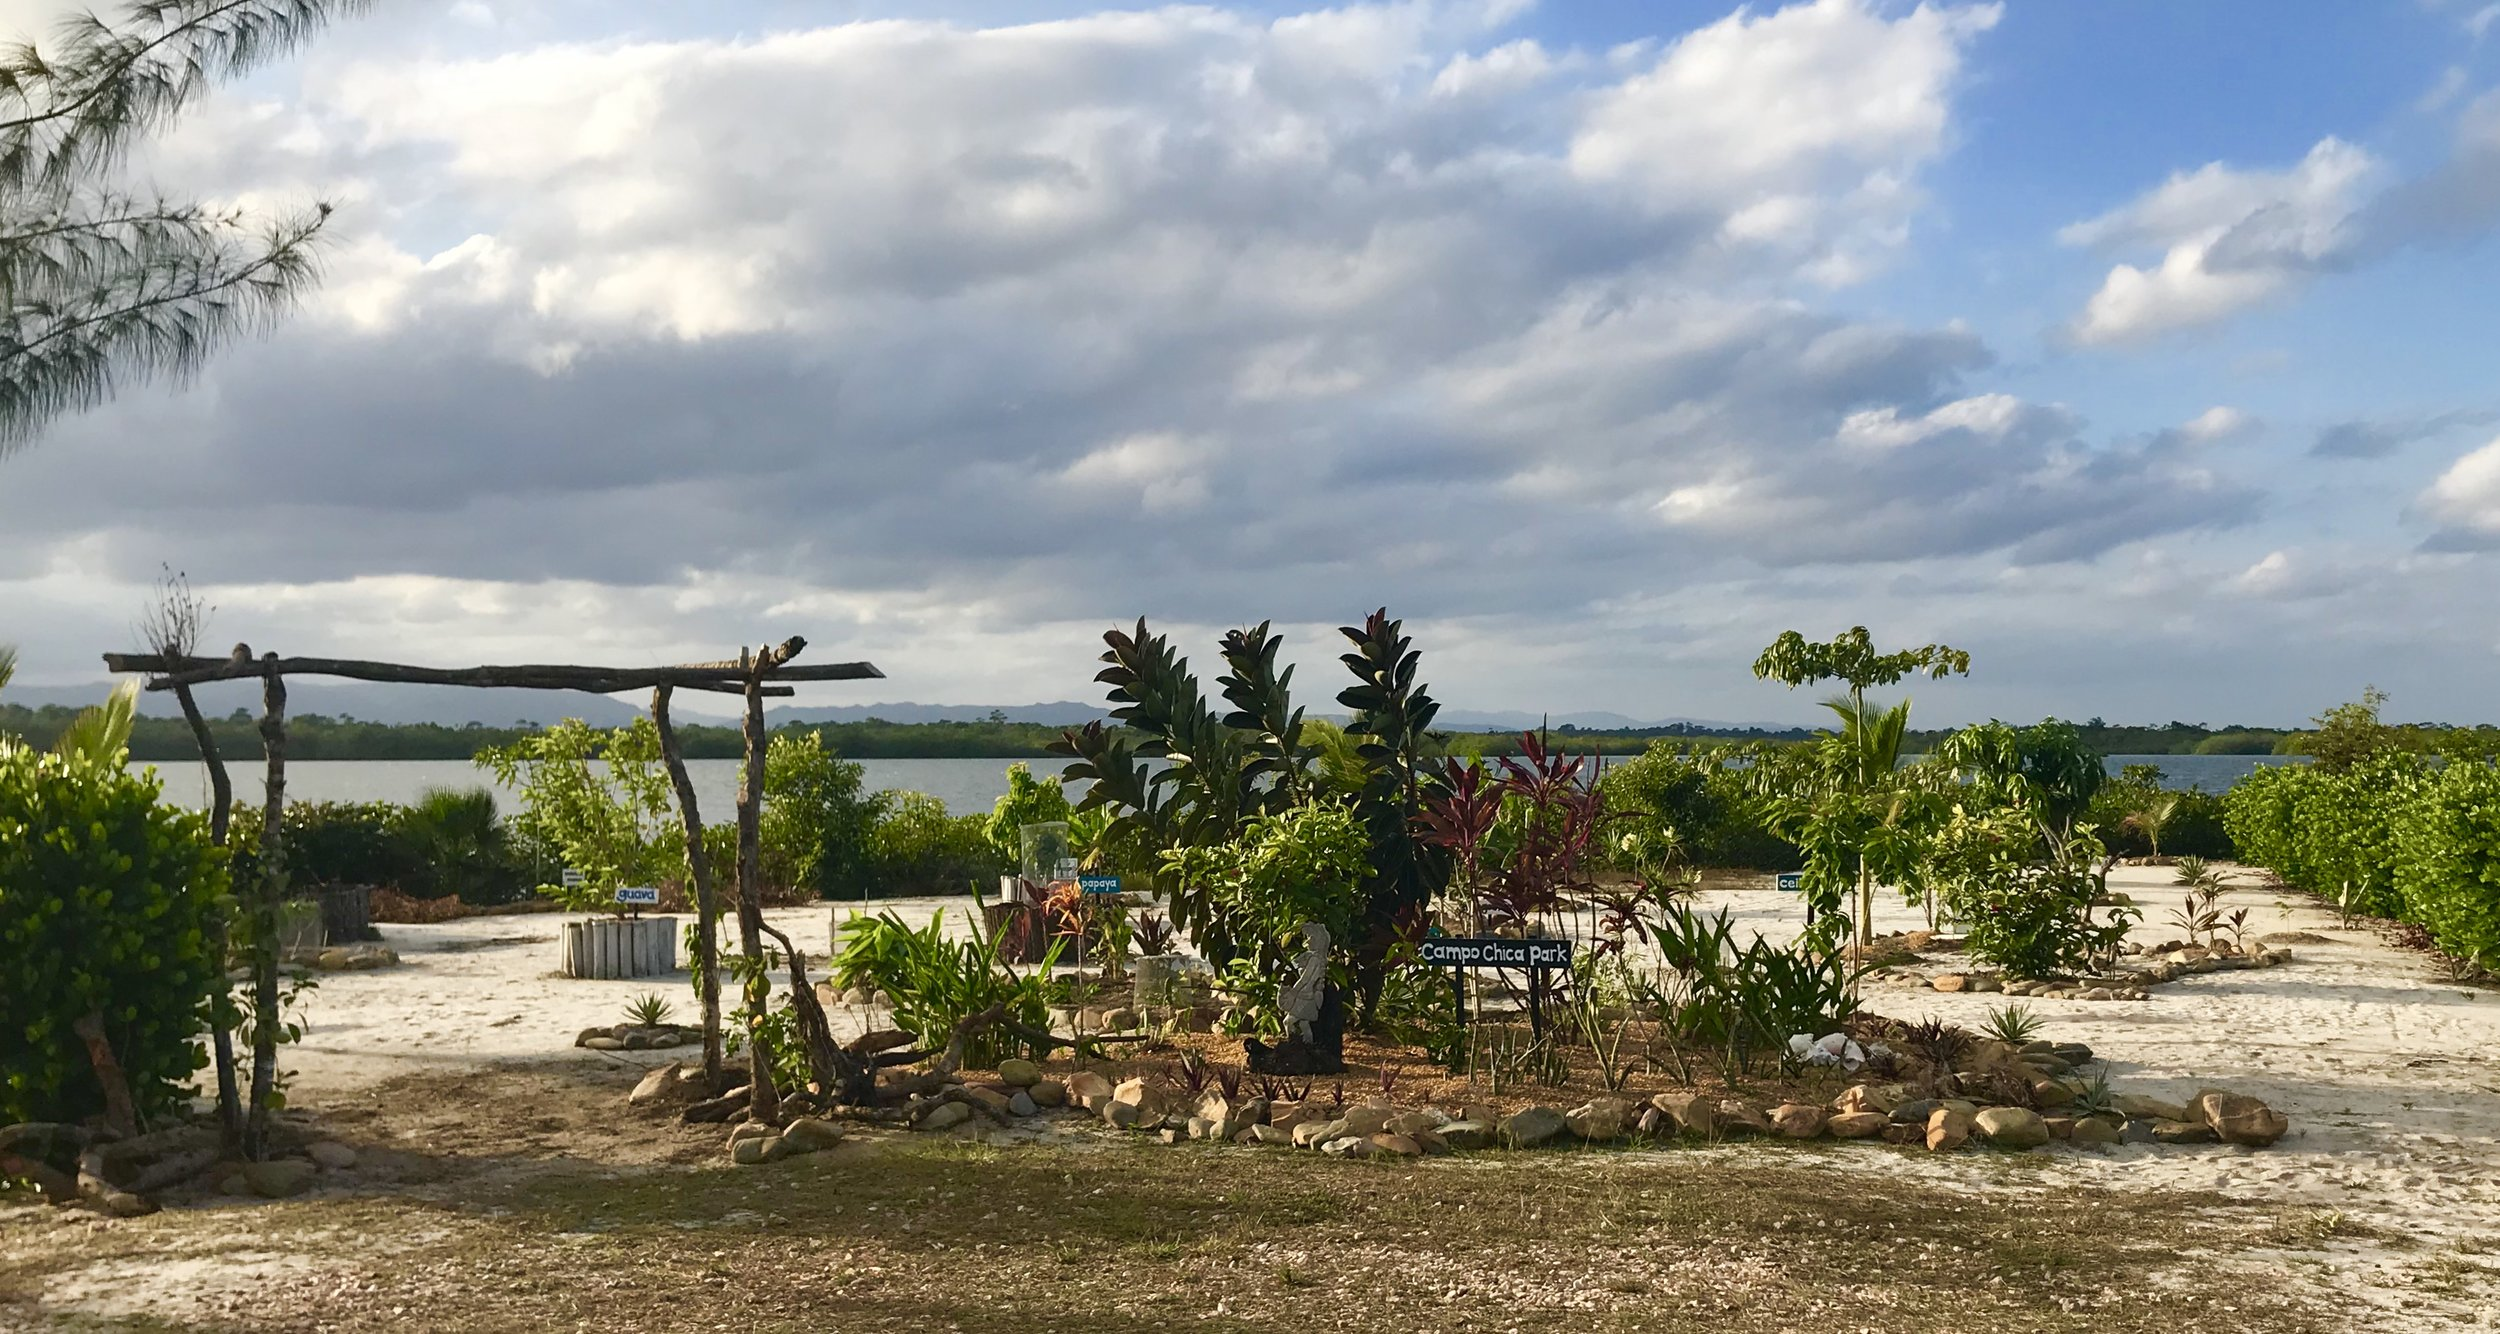 Our community park of tropical fruit trees